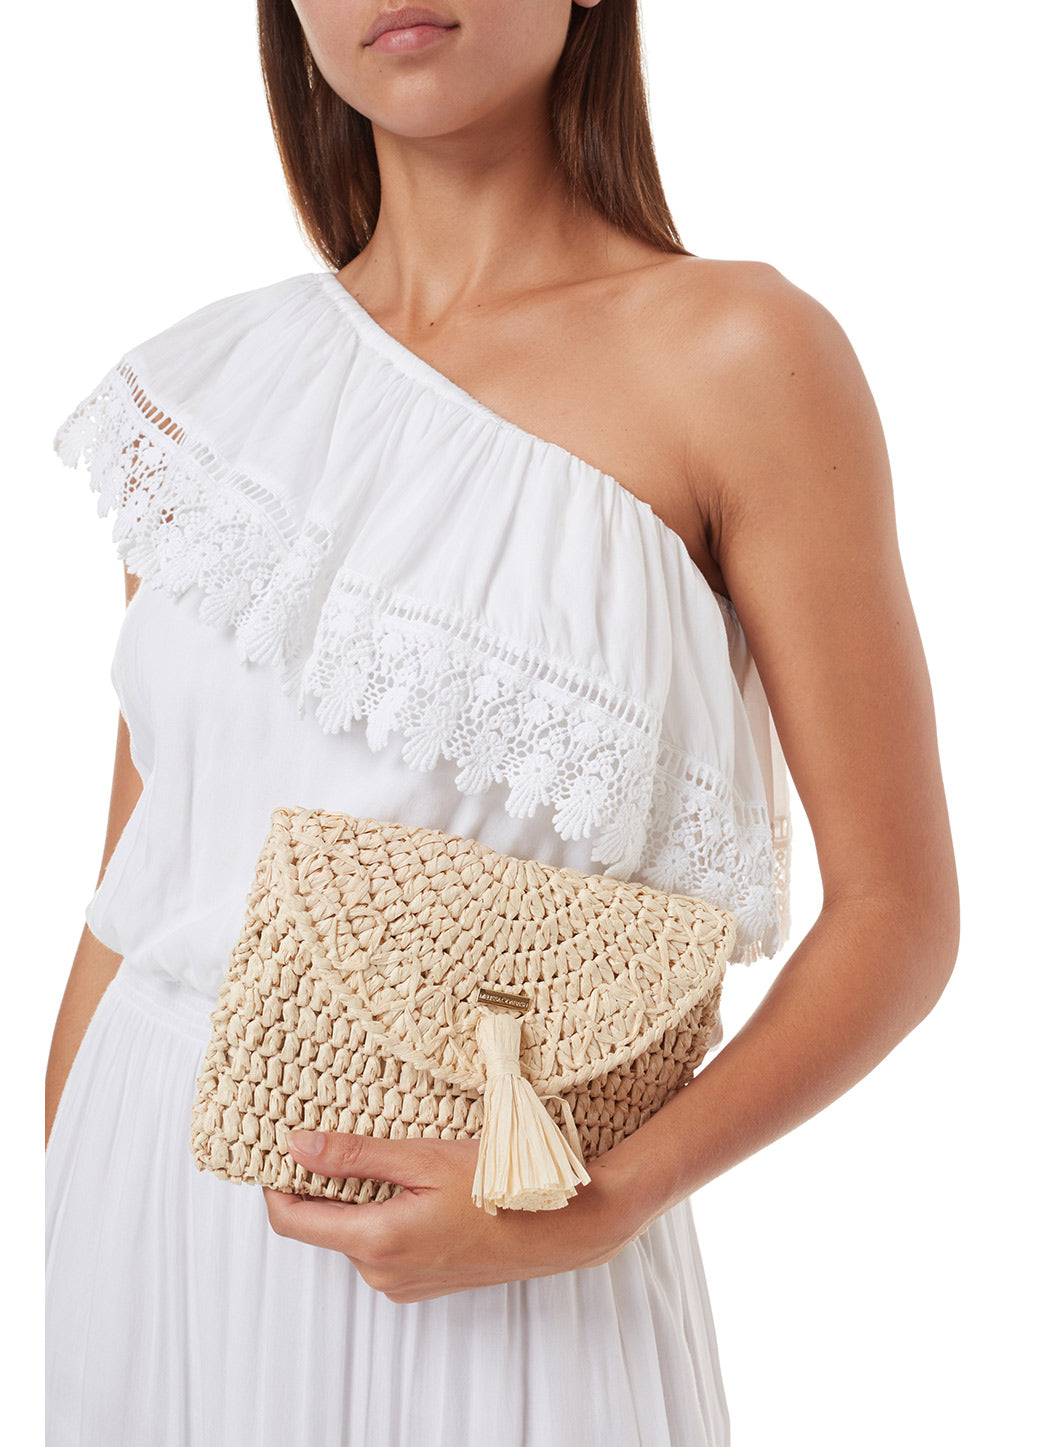 Anacapri Natural Raffia Clutch - Melissa Odabash Accessories